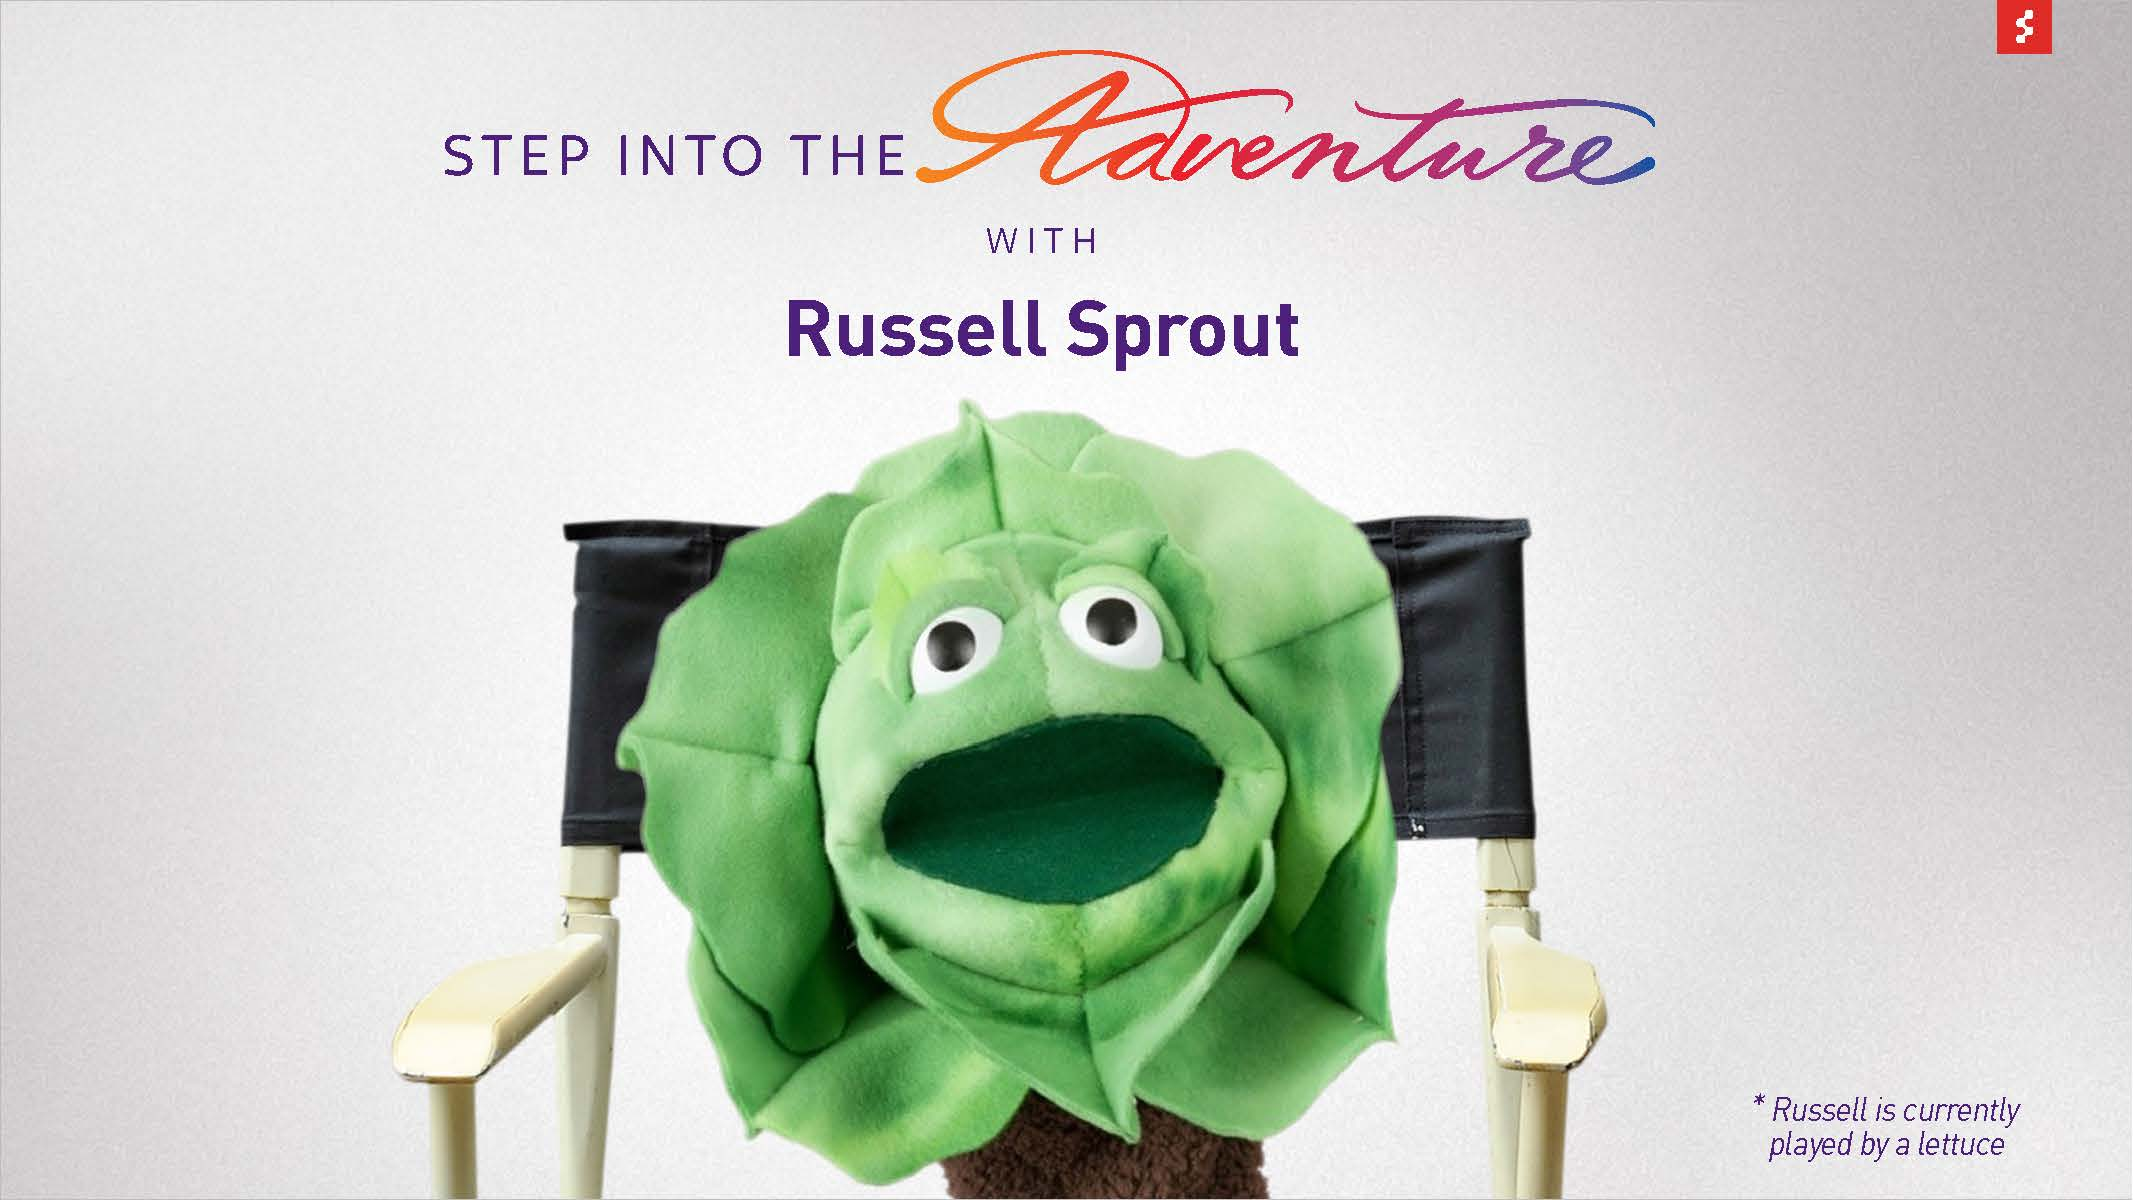 835_02208_SPROUT_PUPPET_MSD_004_Page_02.jpg